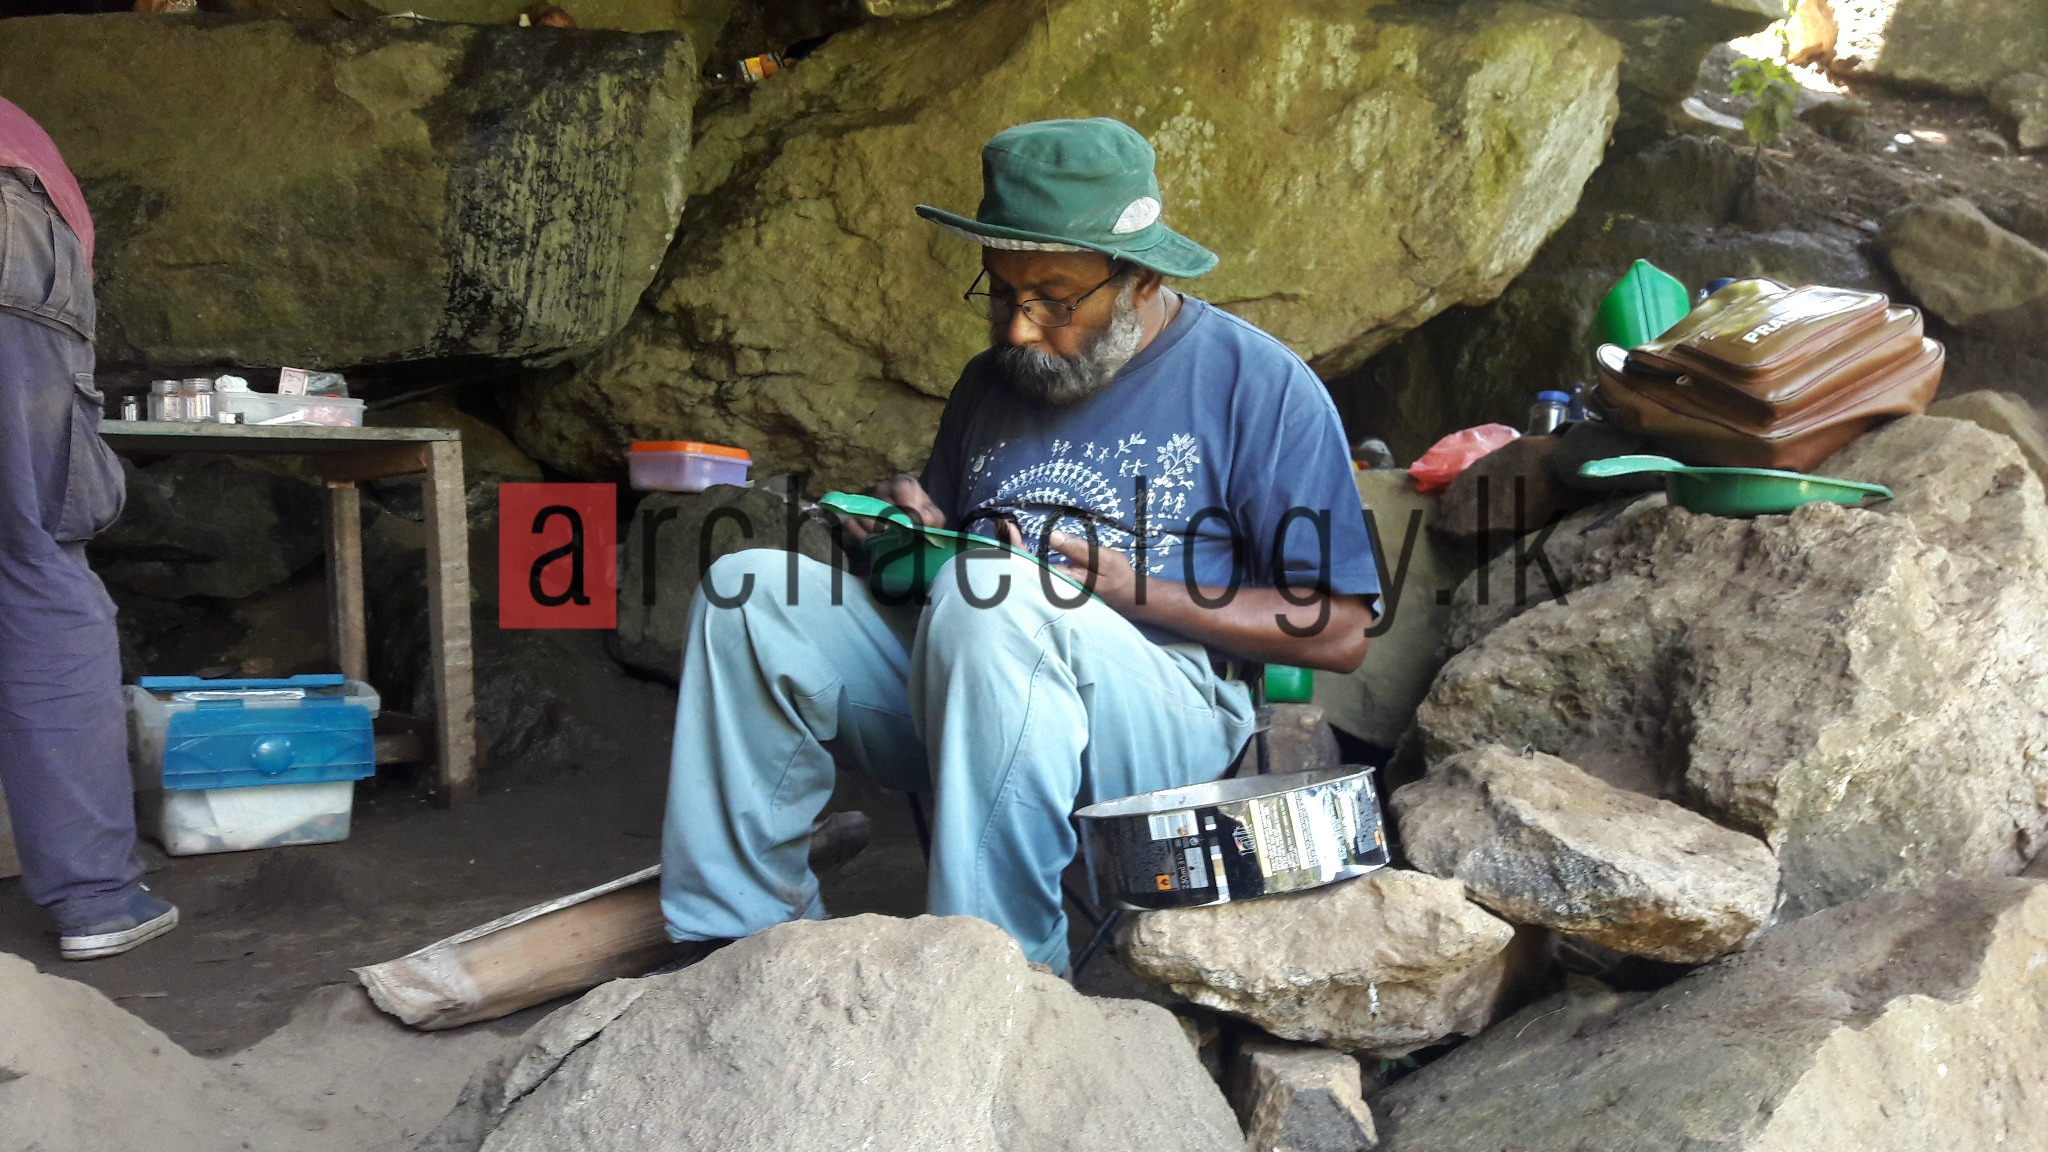 Excavating Alugalge: archaeology.lk visits the excavations of the prehistoric site